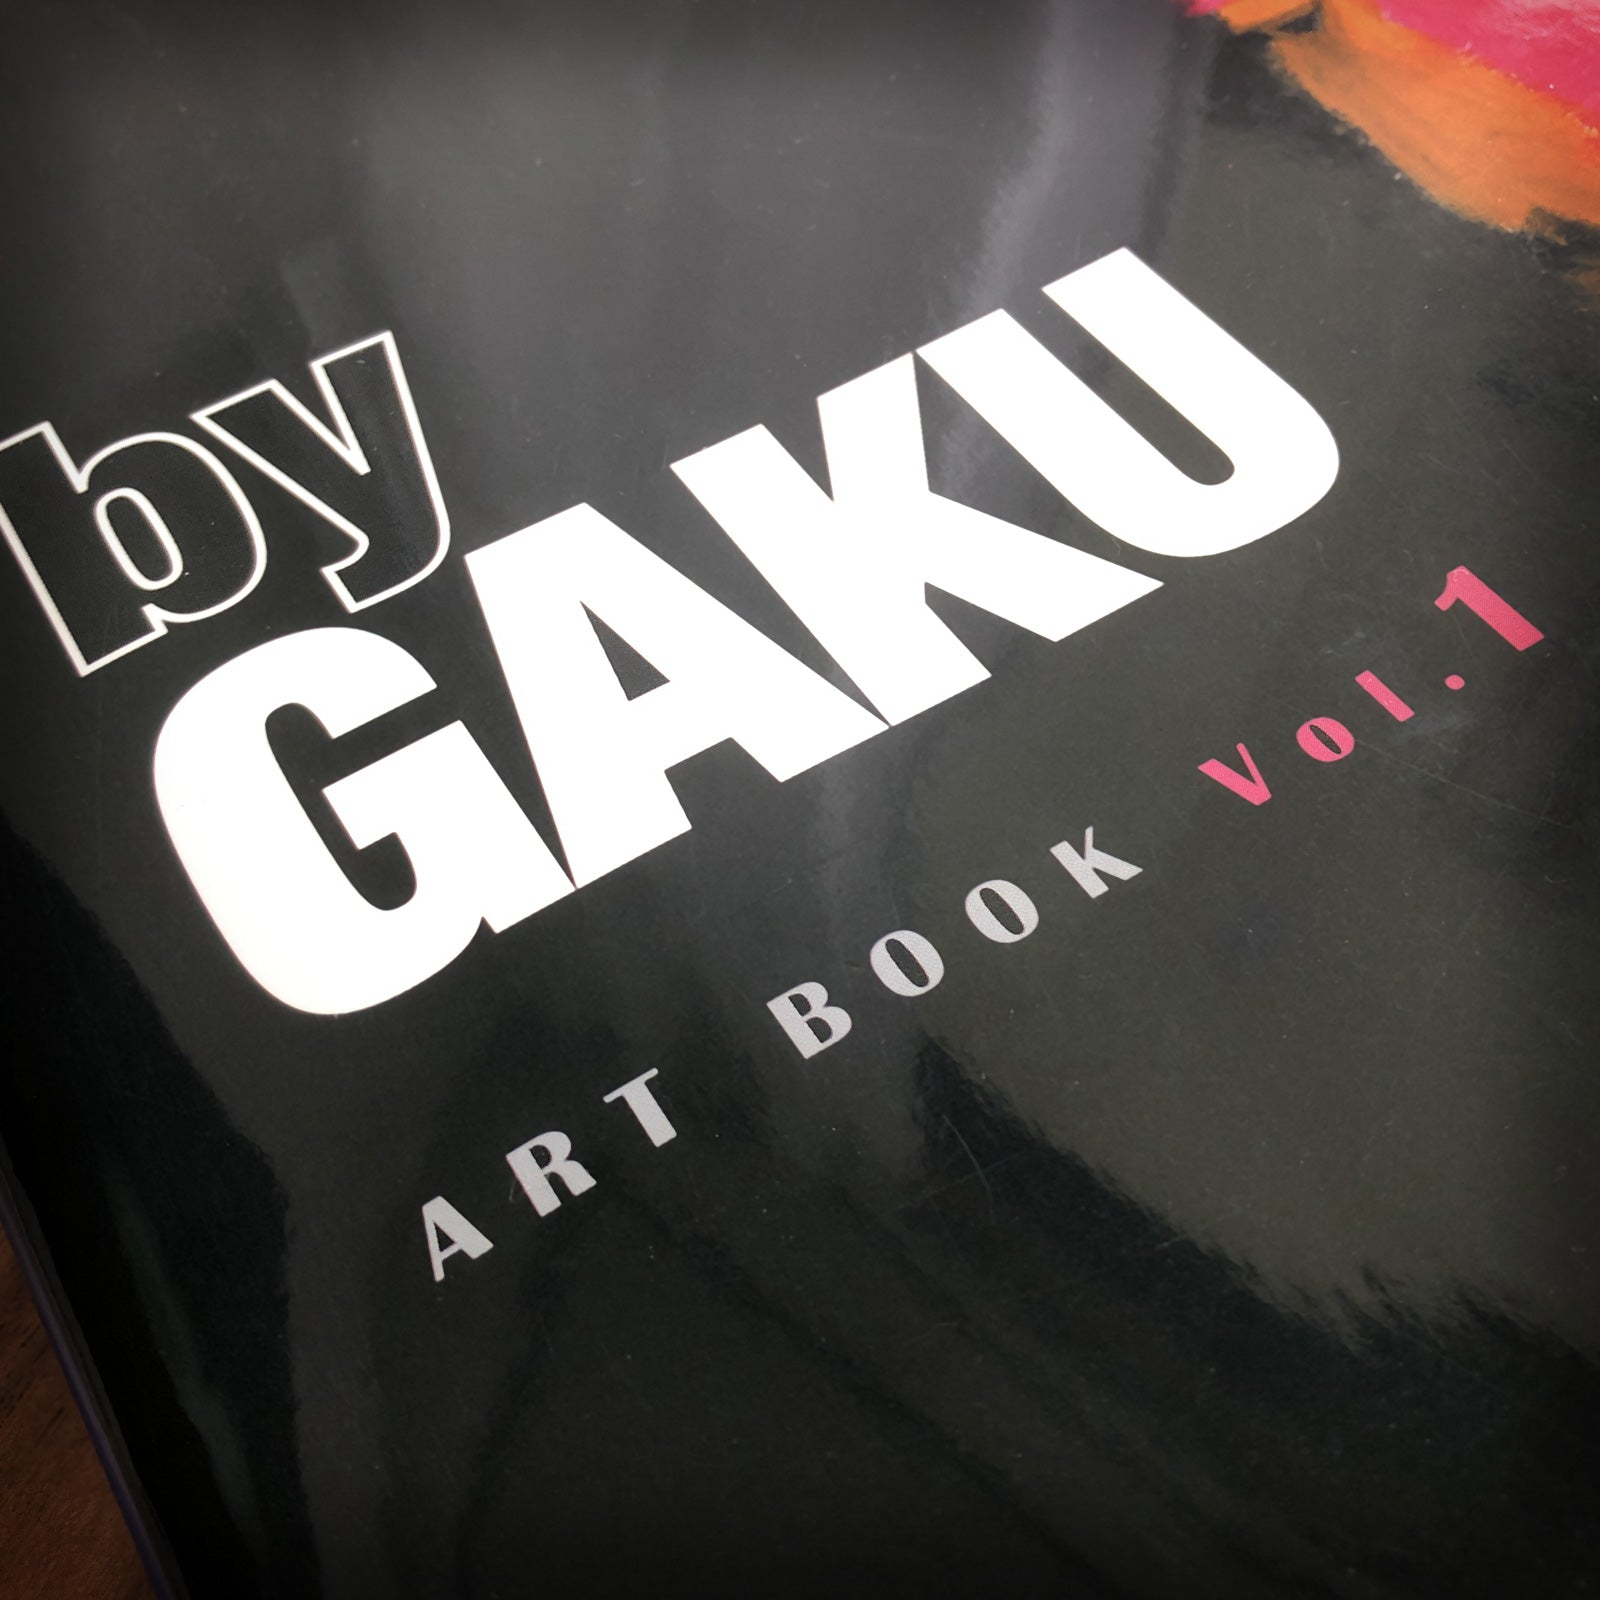 ART BOOK vol.1